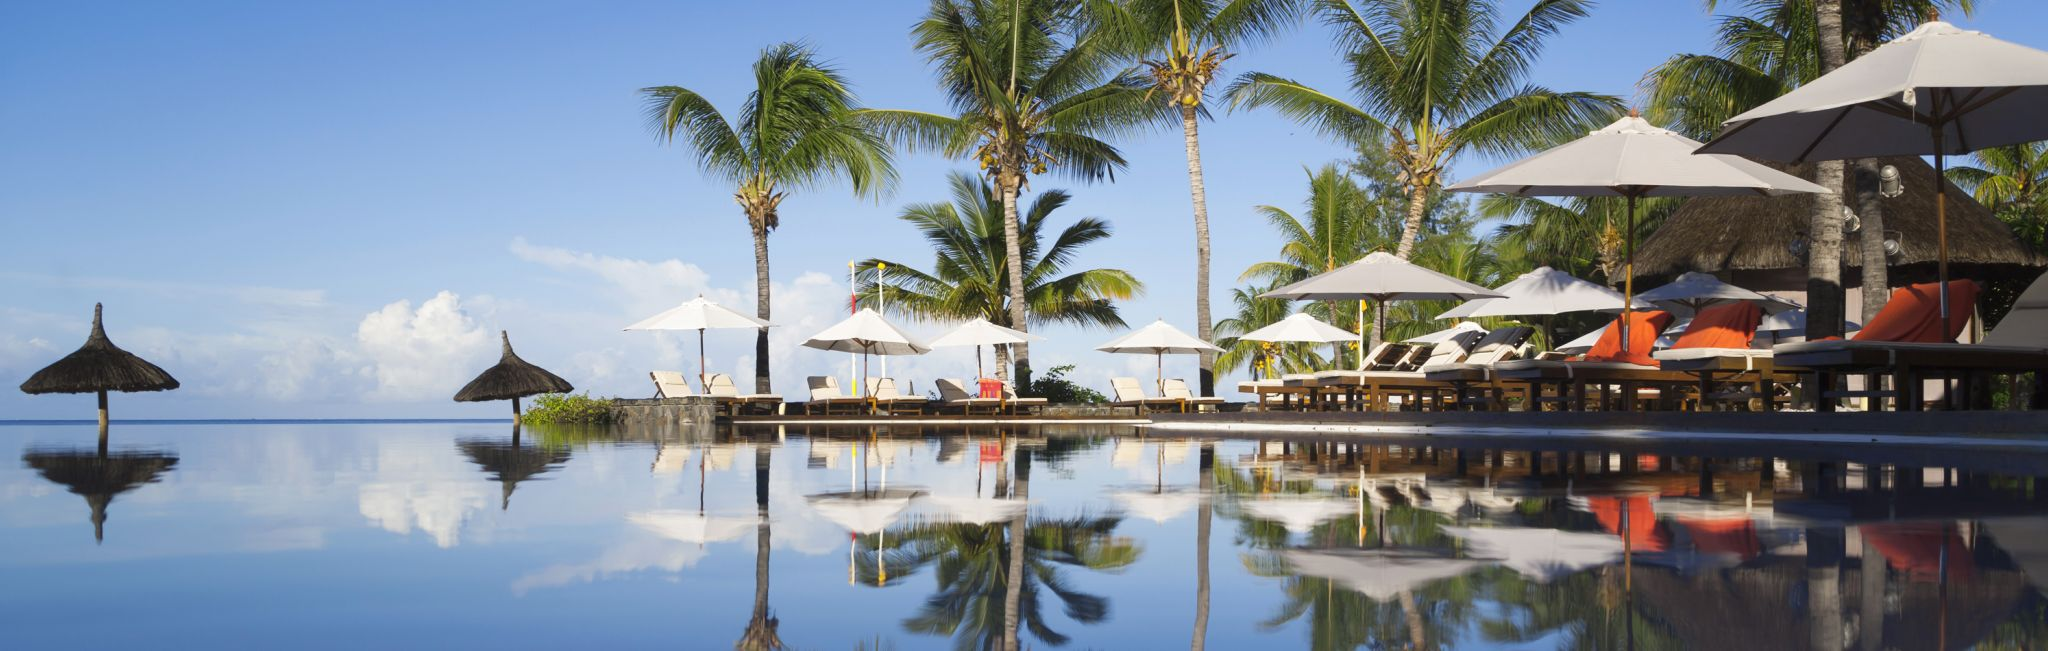 Fiji Vacations Best Fiji Vacation Packages Zicasso - Fiji vacations